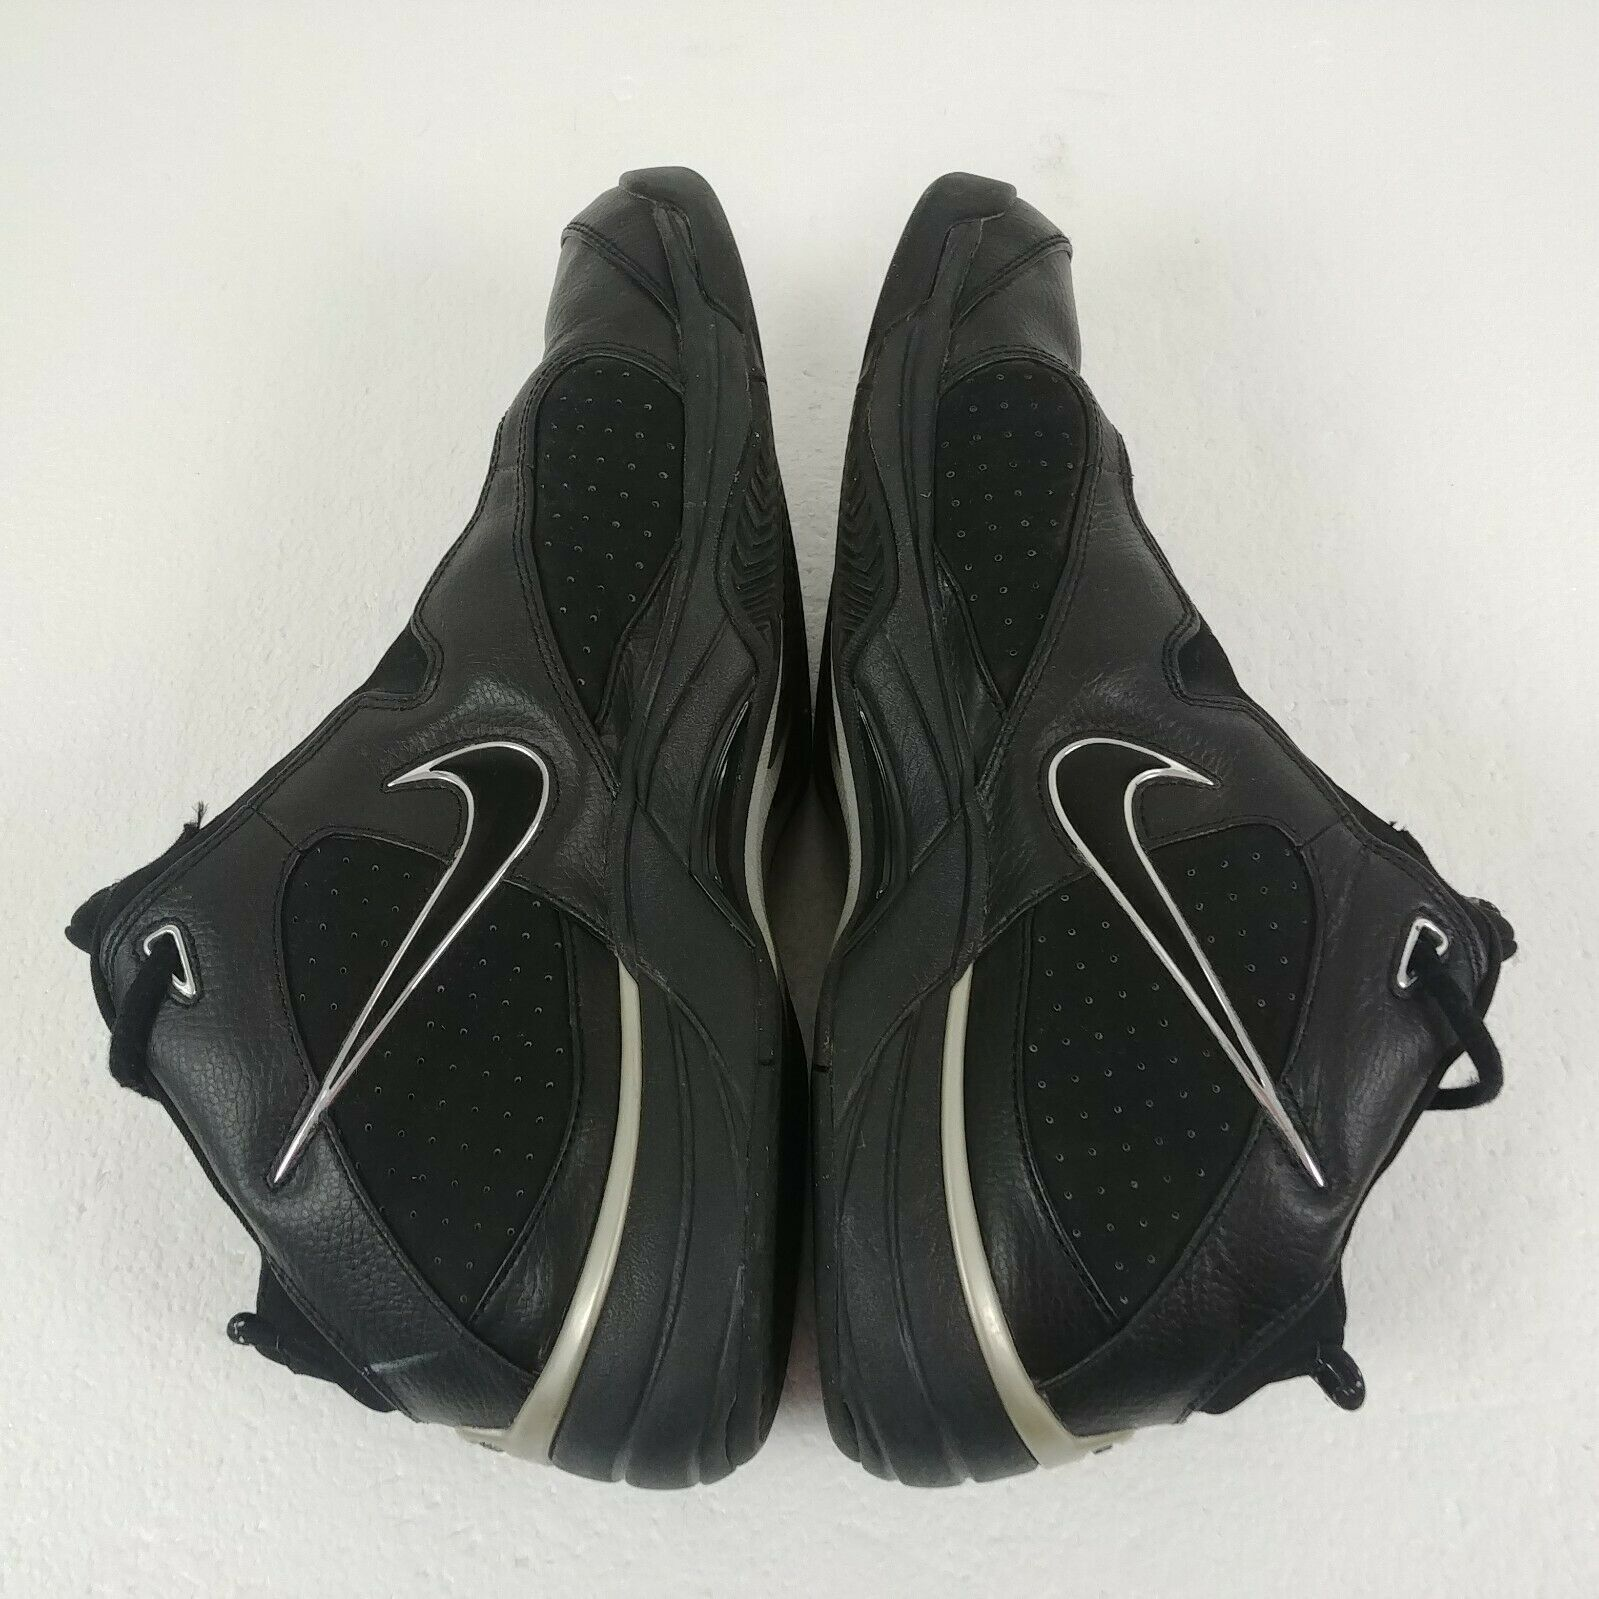 Nike Flight Fury Basketball Shoes Black 310102-001 Mens Size 13 Athletic Train image 4